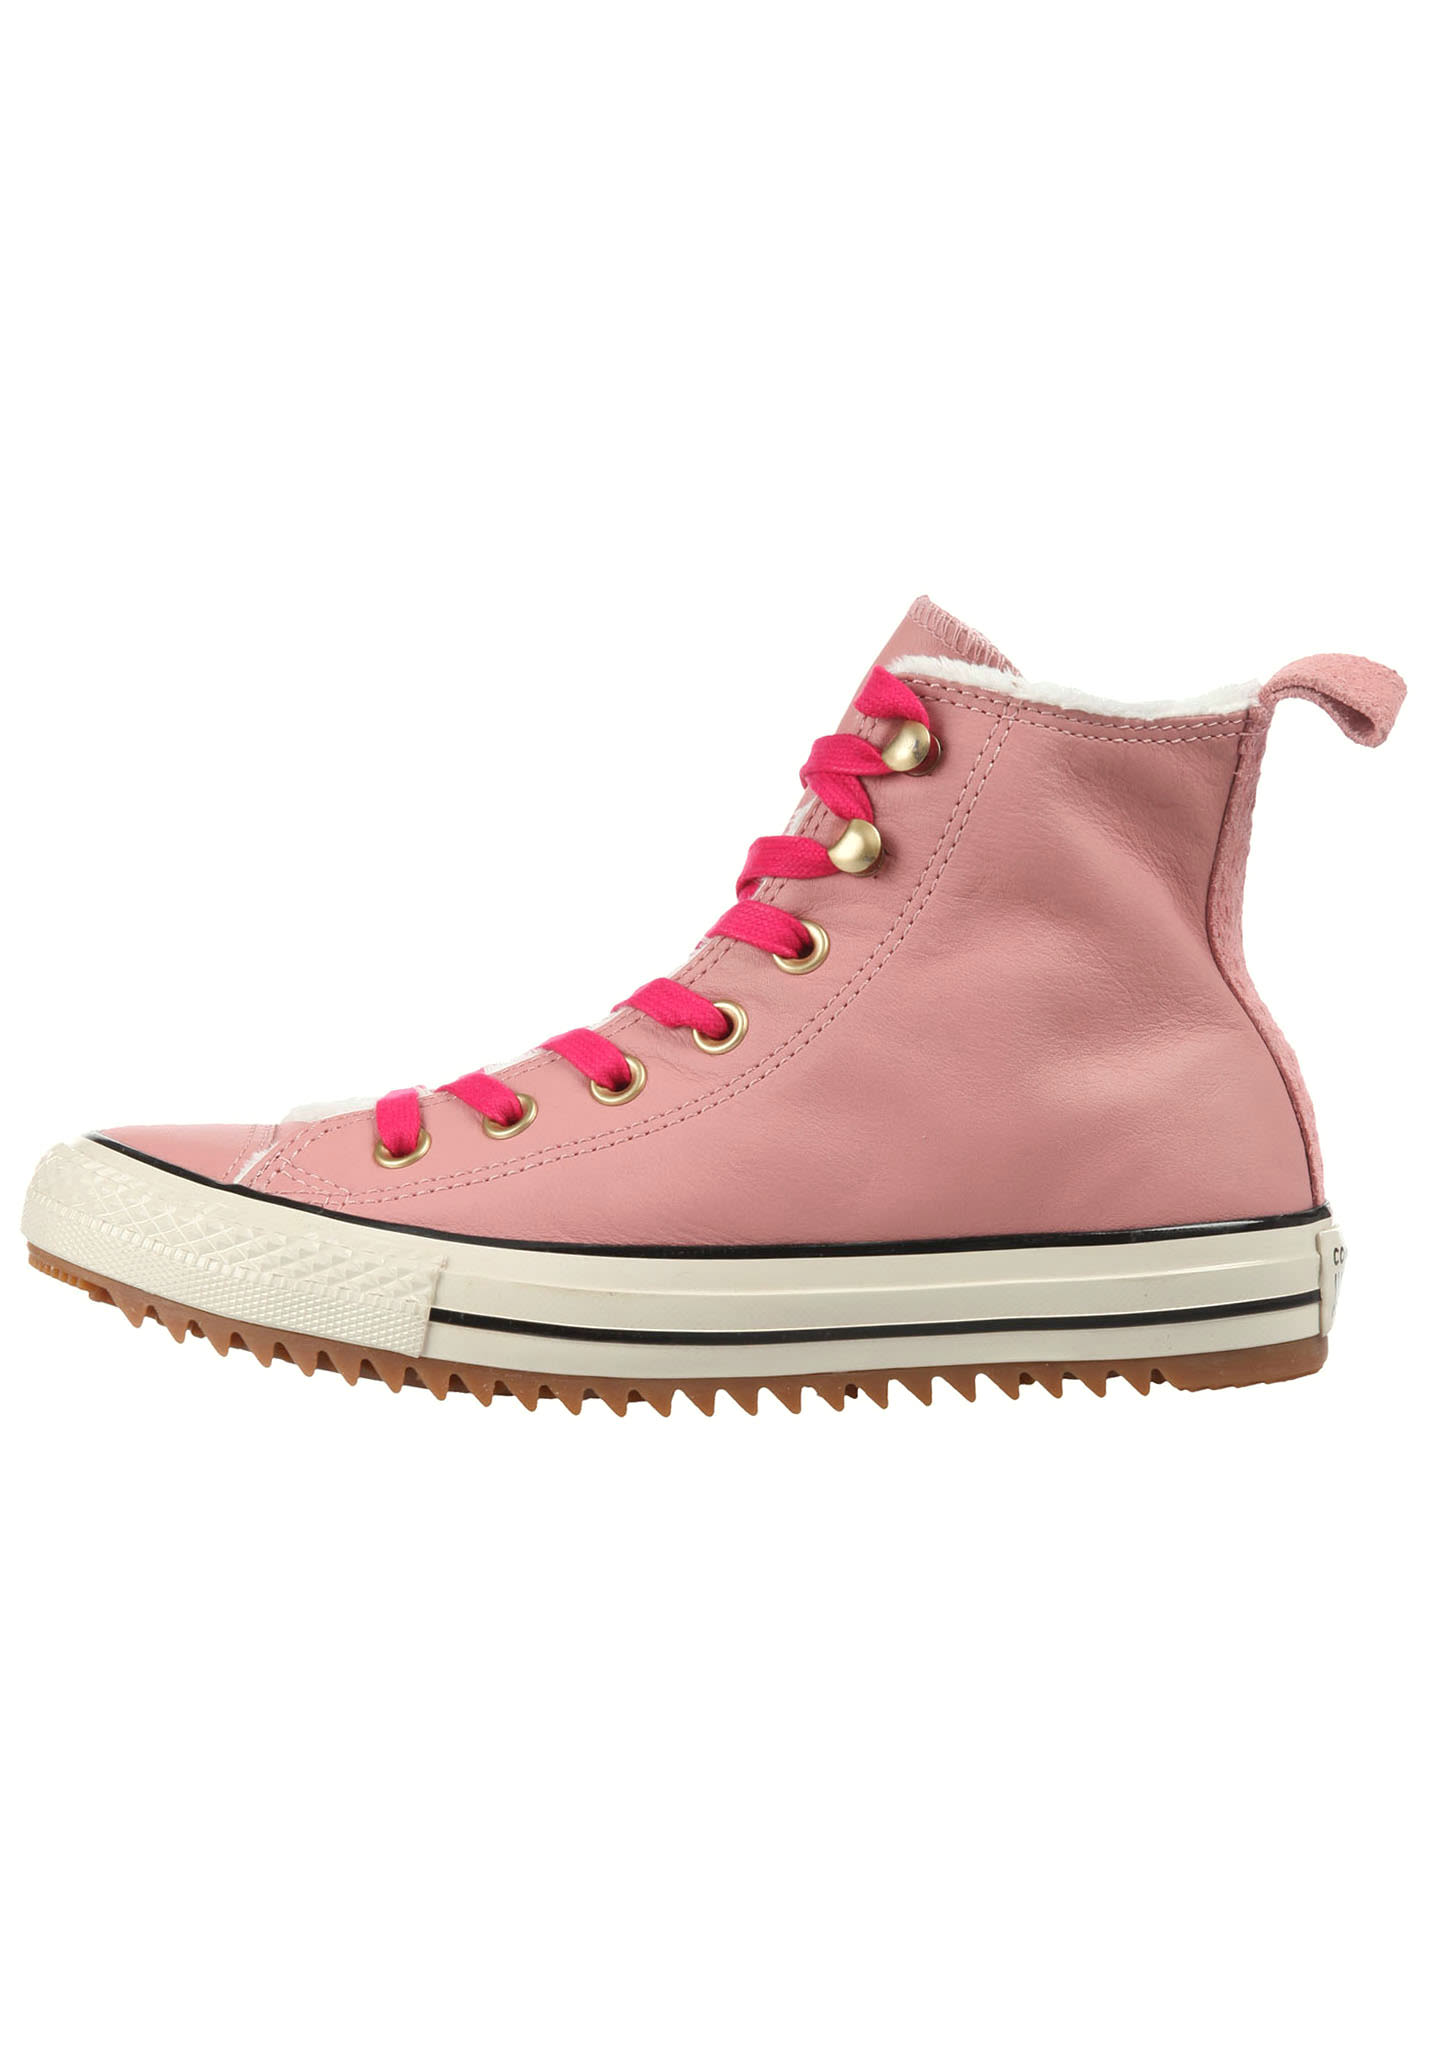 cea317906274 Converse Chuck Taylor All Star Hi - Sneakers for Women - Pink ...